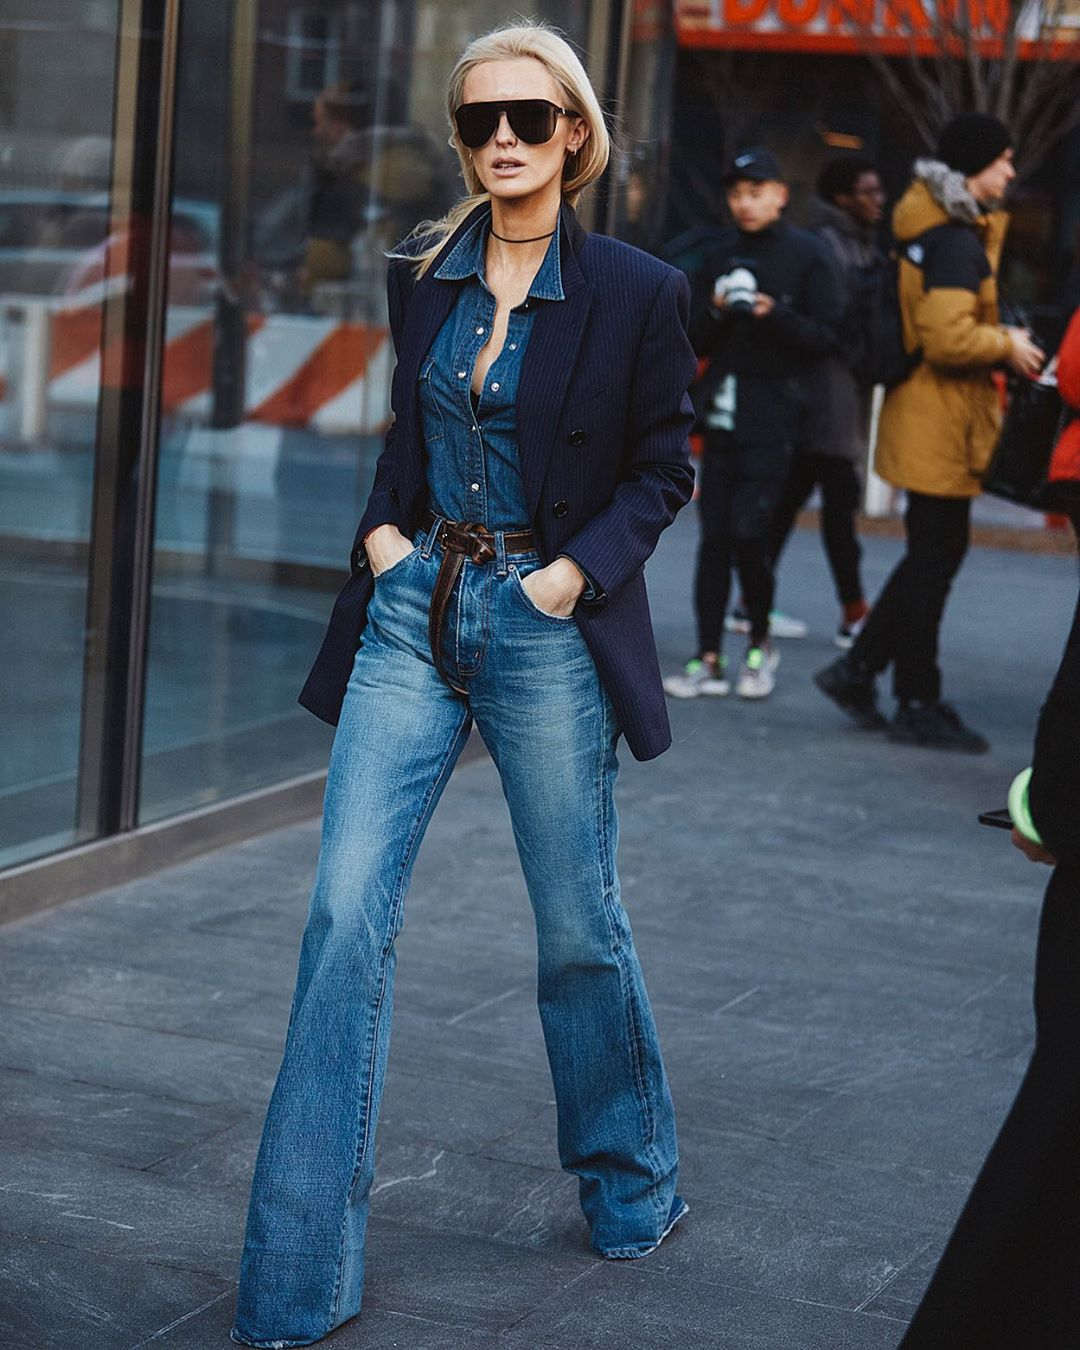 This Double Denim Look is So Good